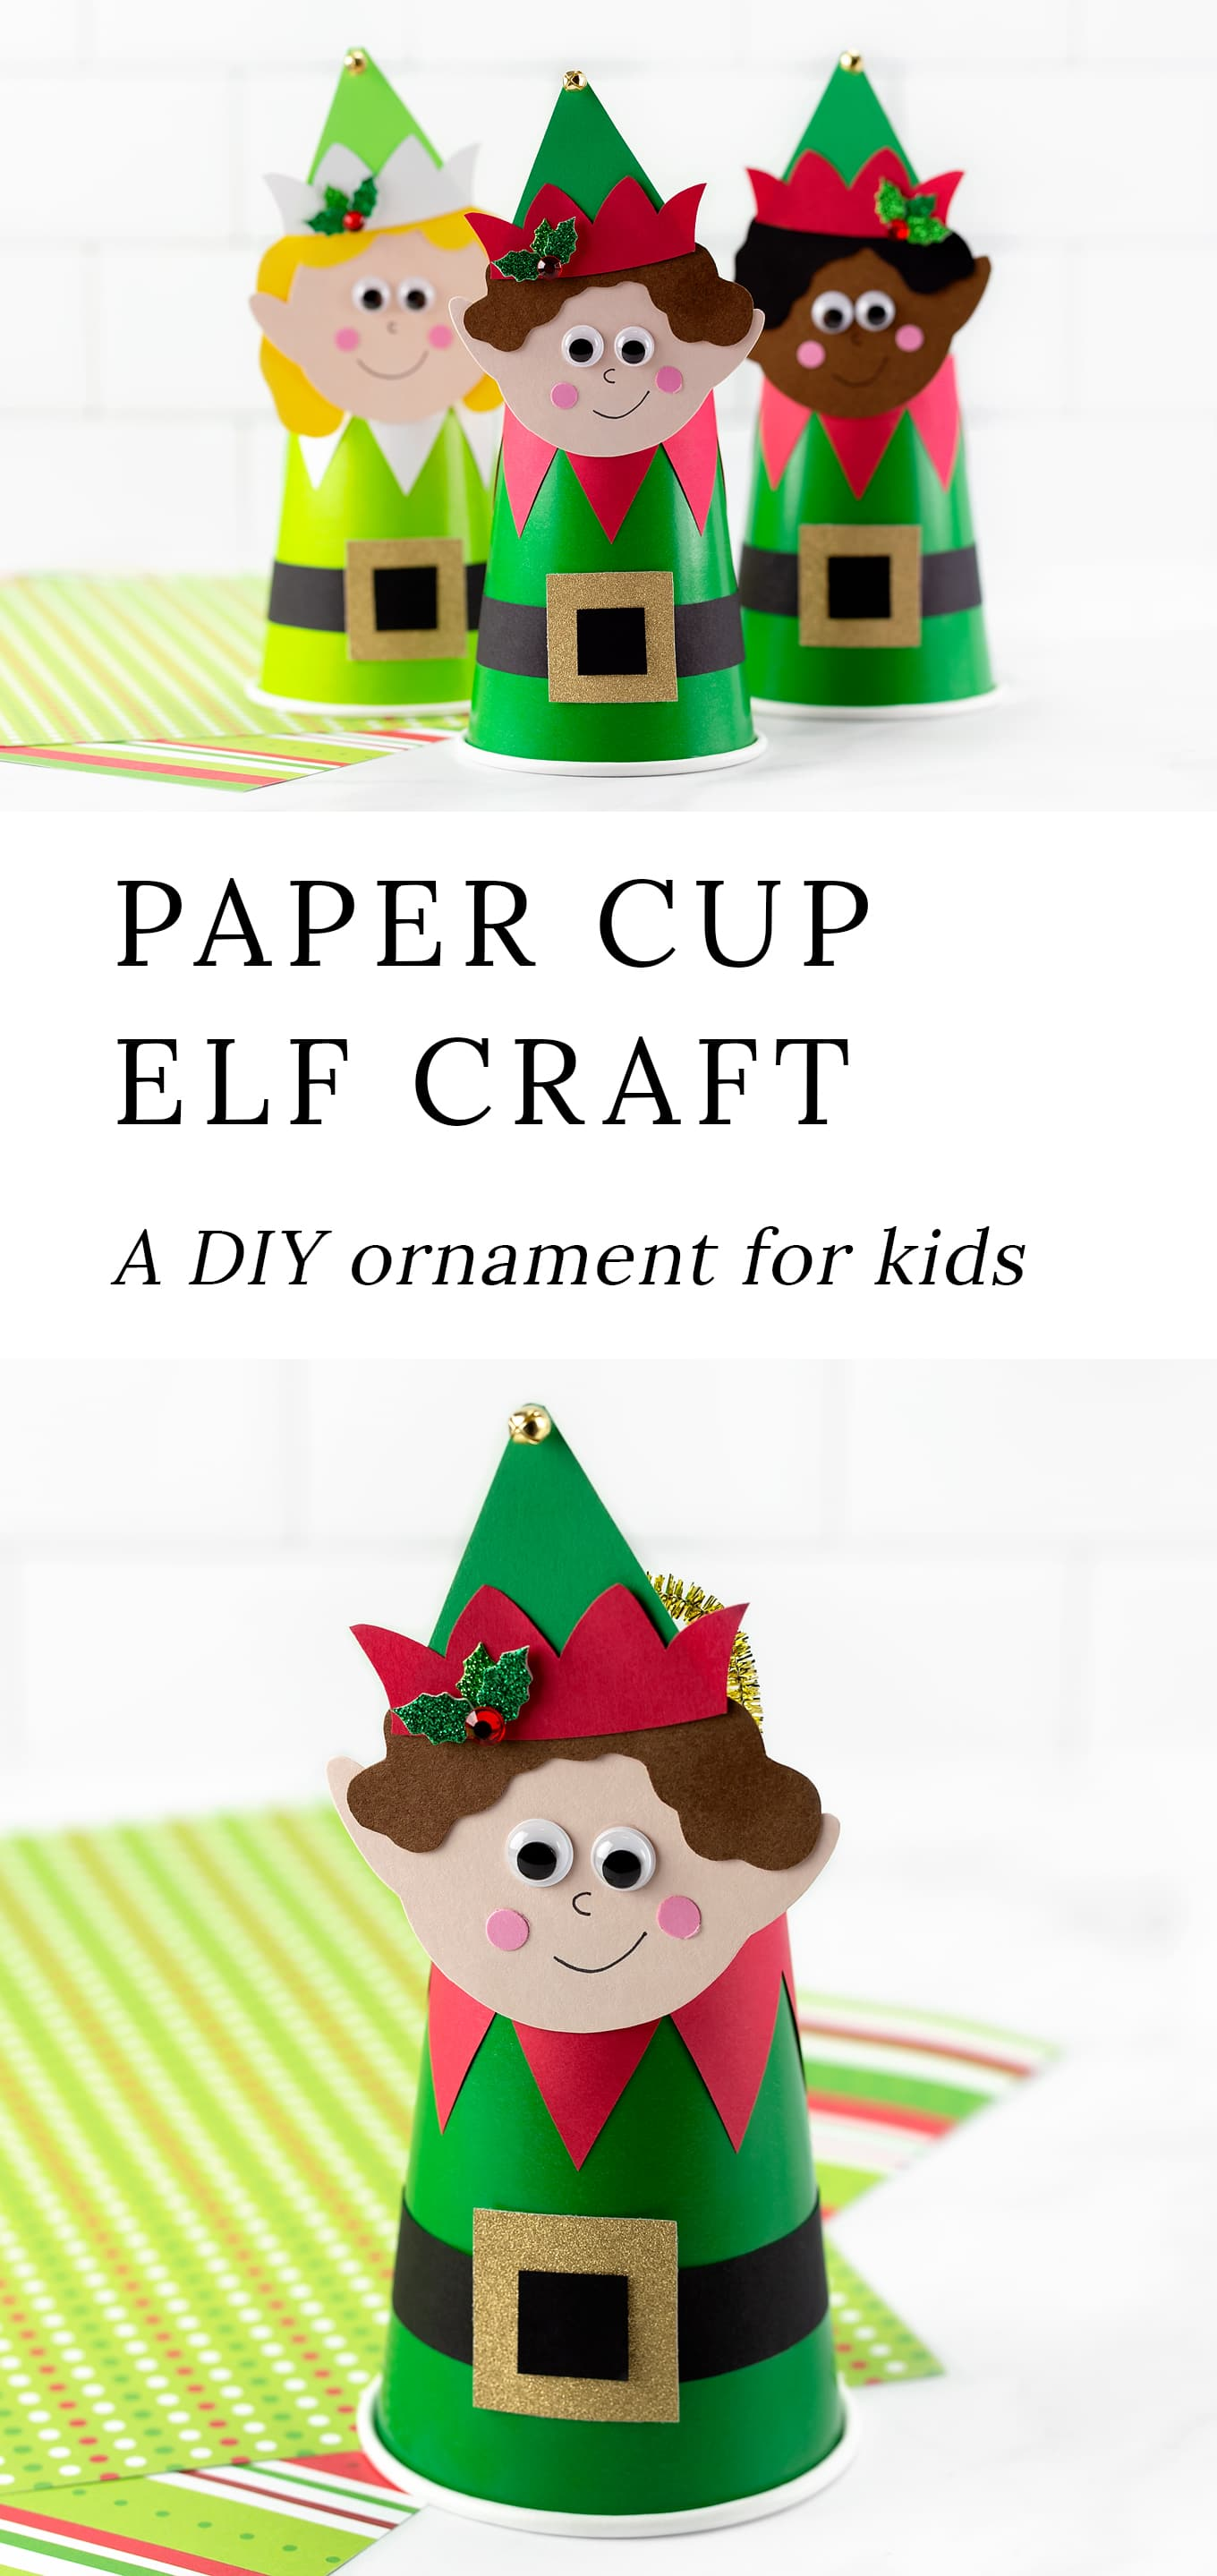 This easy, inexpensive, and fun Paper Cup Elf craft is perfect for school holiday parties, community programs, and home. Includes a free printable template and video tutorial. #papercupelf #elfcraft #christmas #kidscrafts via @firefliesandmudpies